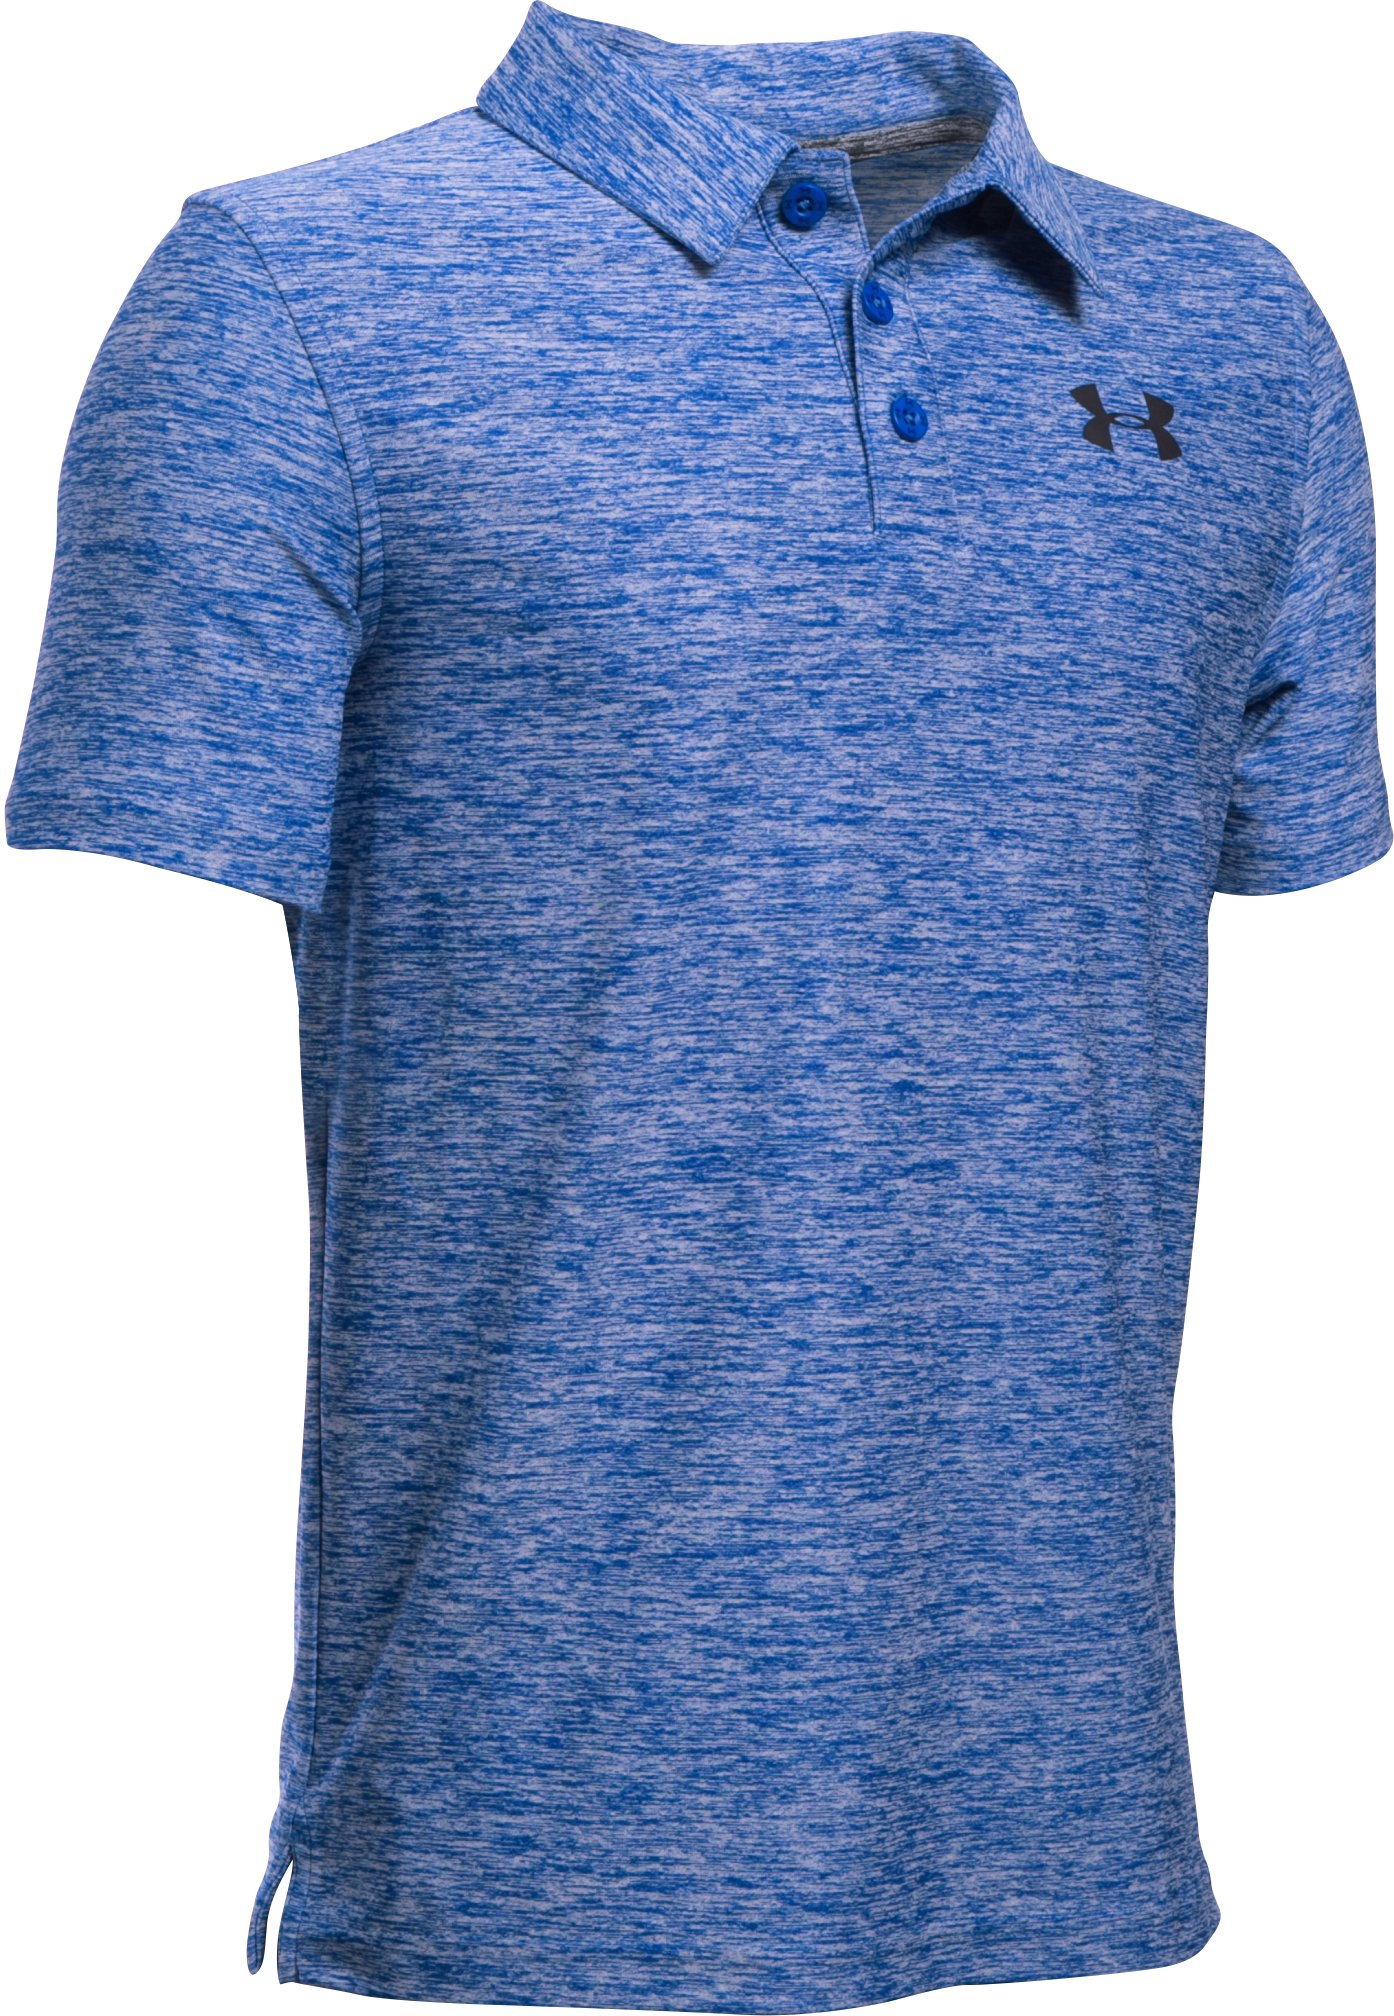 Boys' UA Playoff Polo, ULTRA BLUE, zoomed image